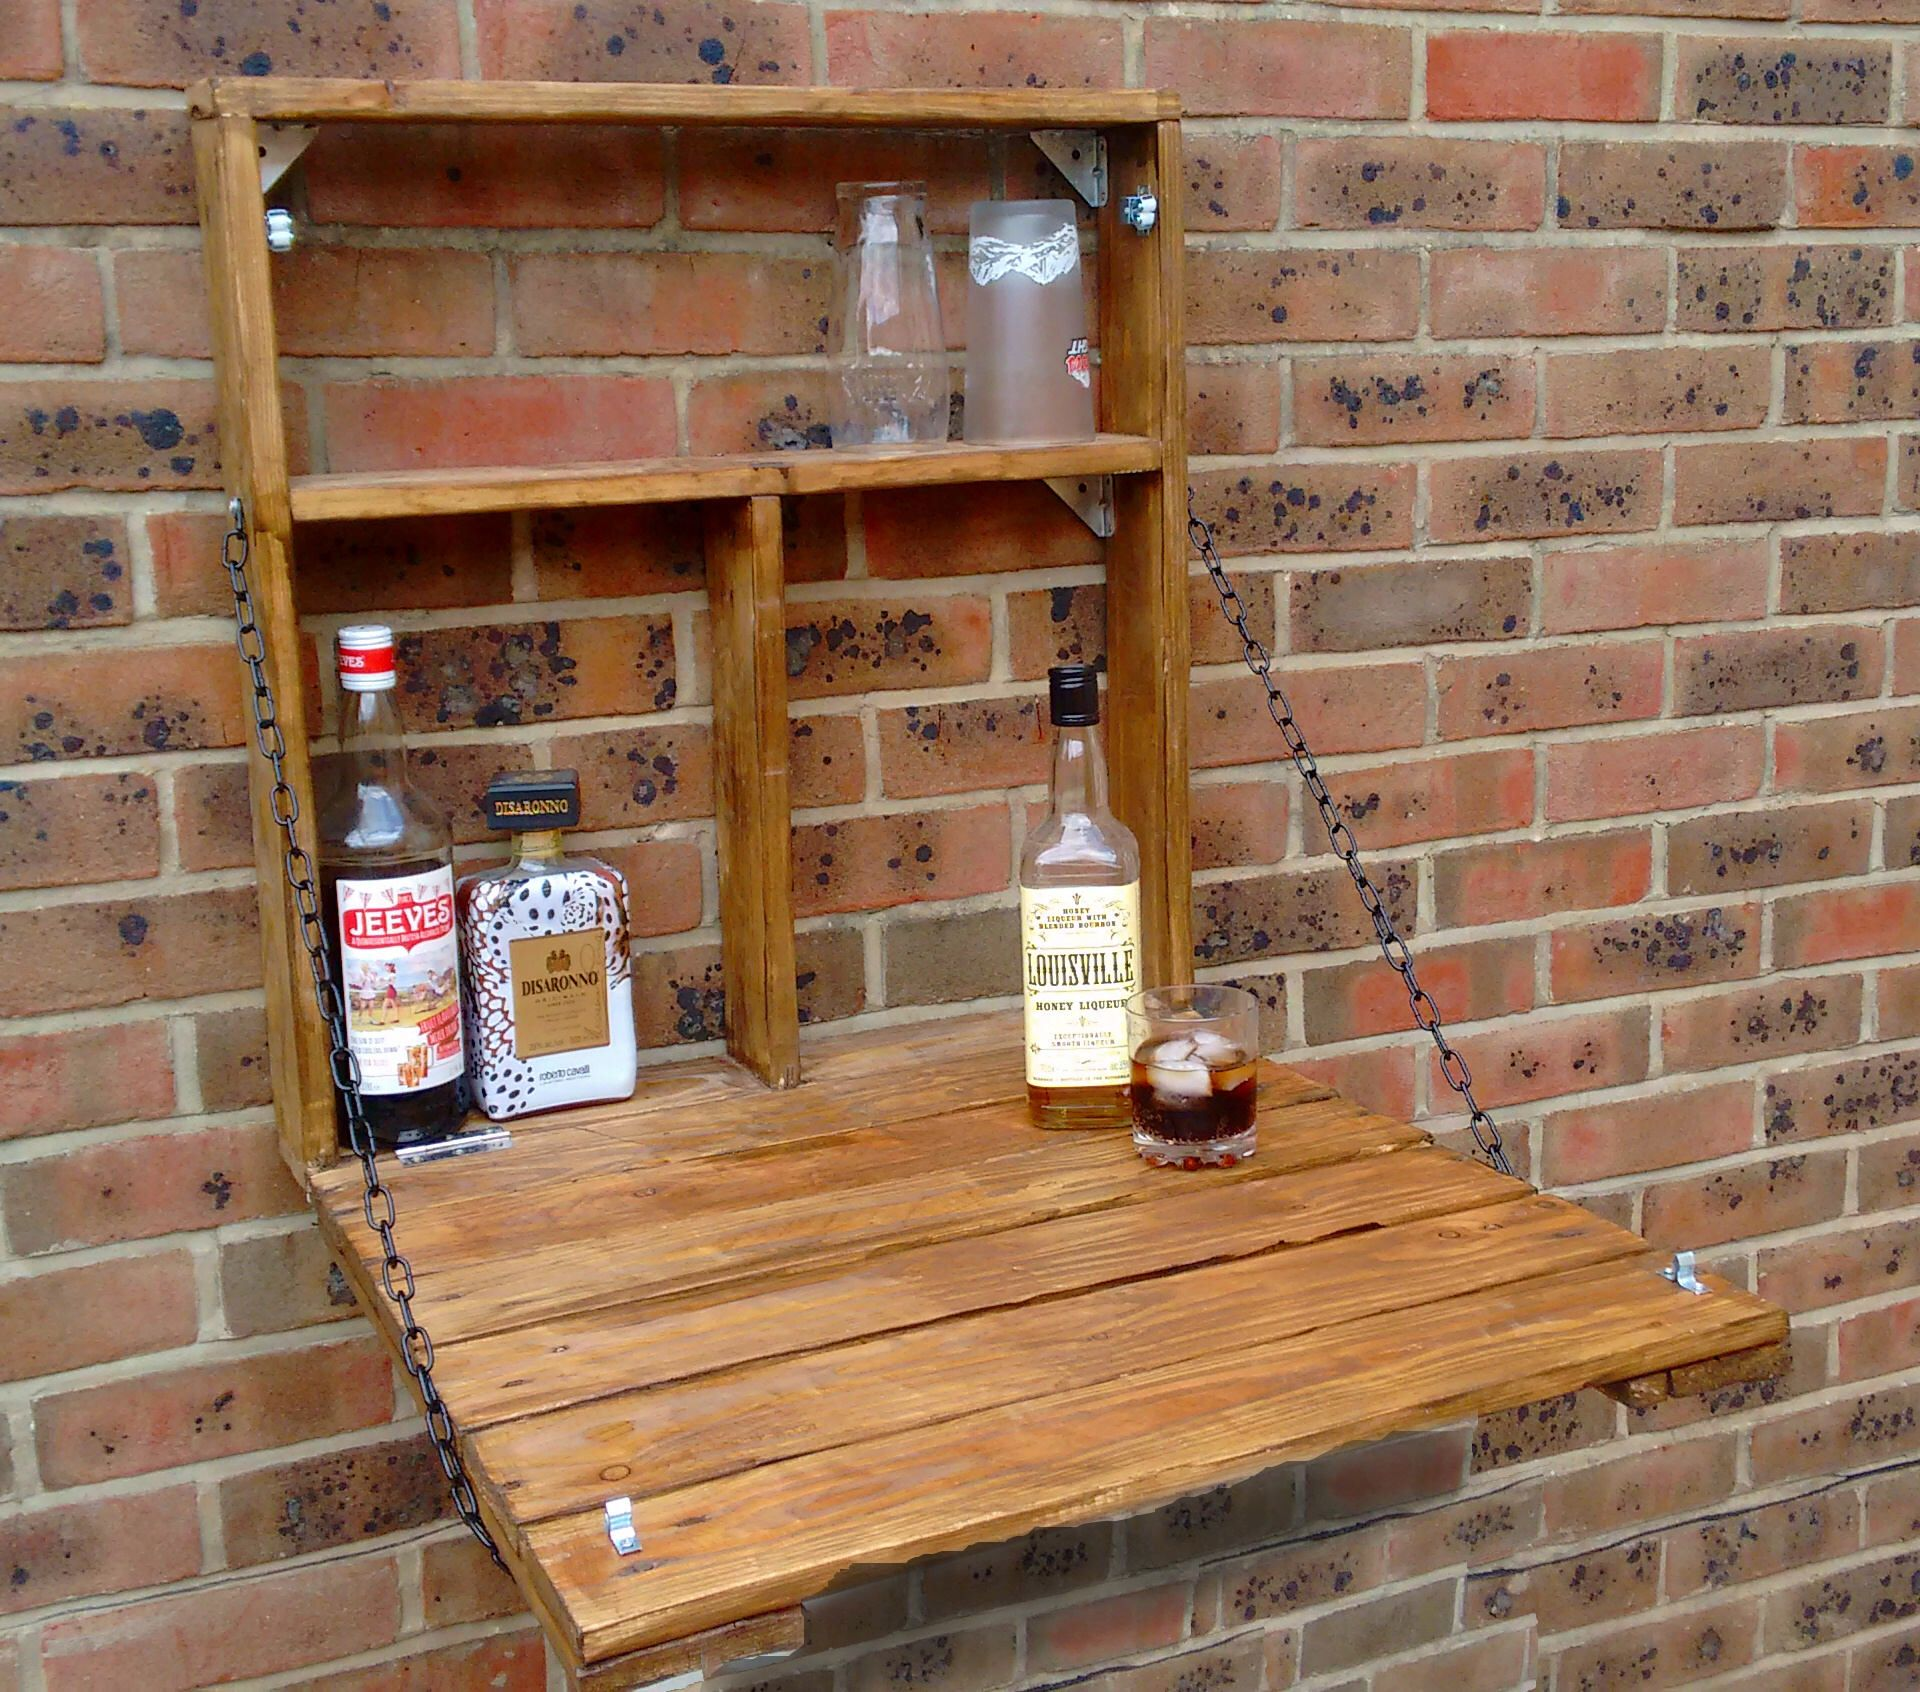 The Drinky Shelf A Snazzy Upcycled Fold Down Garden Mini Bar Drinks Cabinet Murphy Bar Made From Reclaimed Pallet Wood Mini Bar Drinks Cabinet Wall Bar